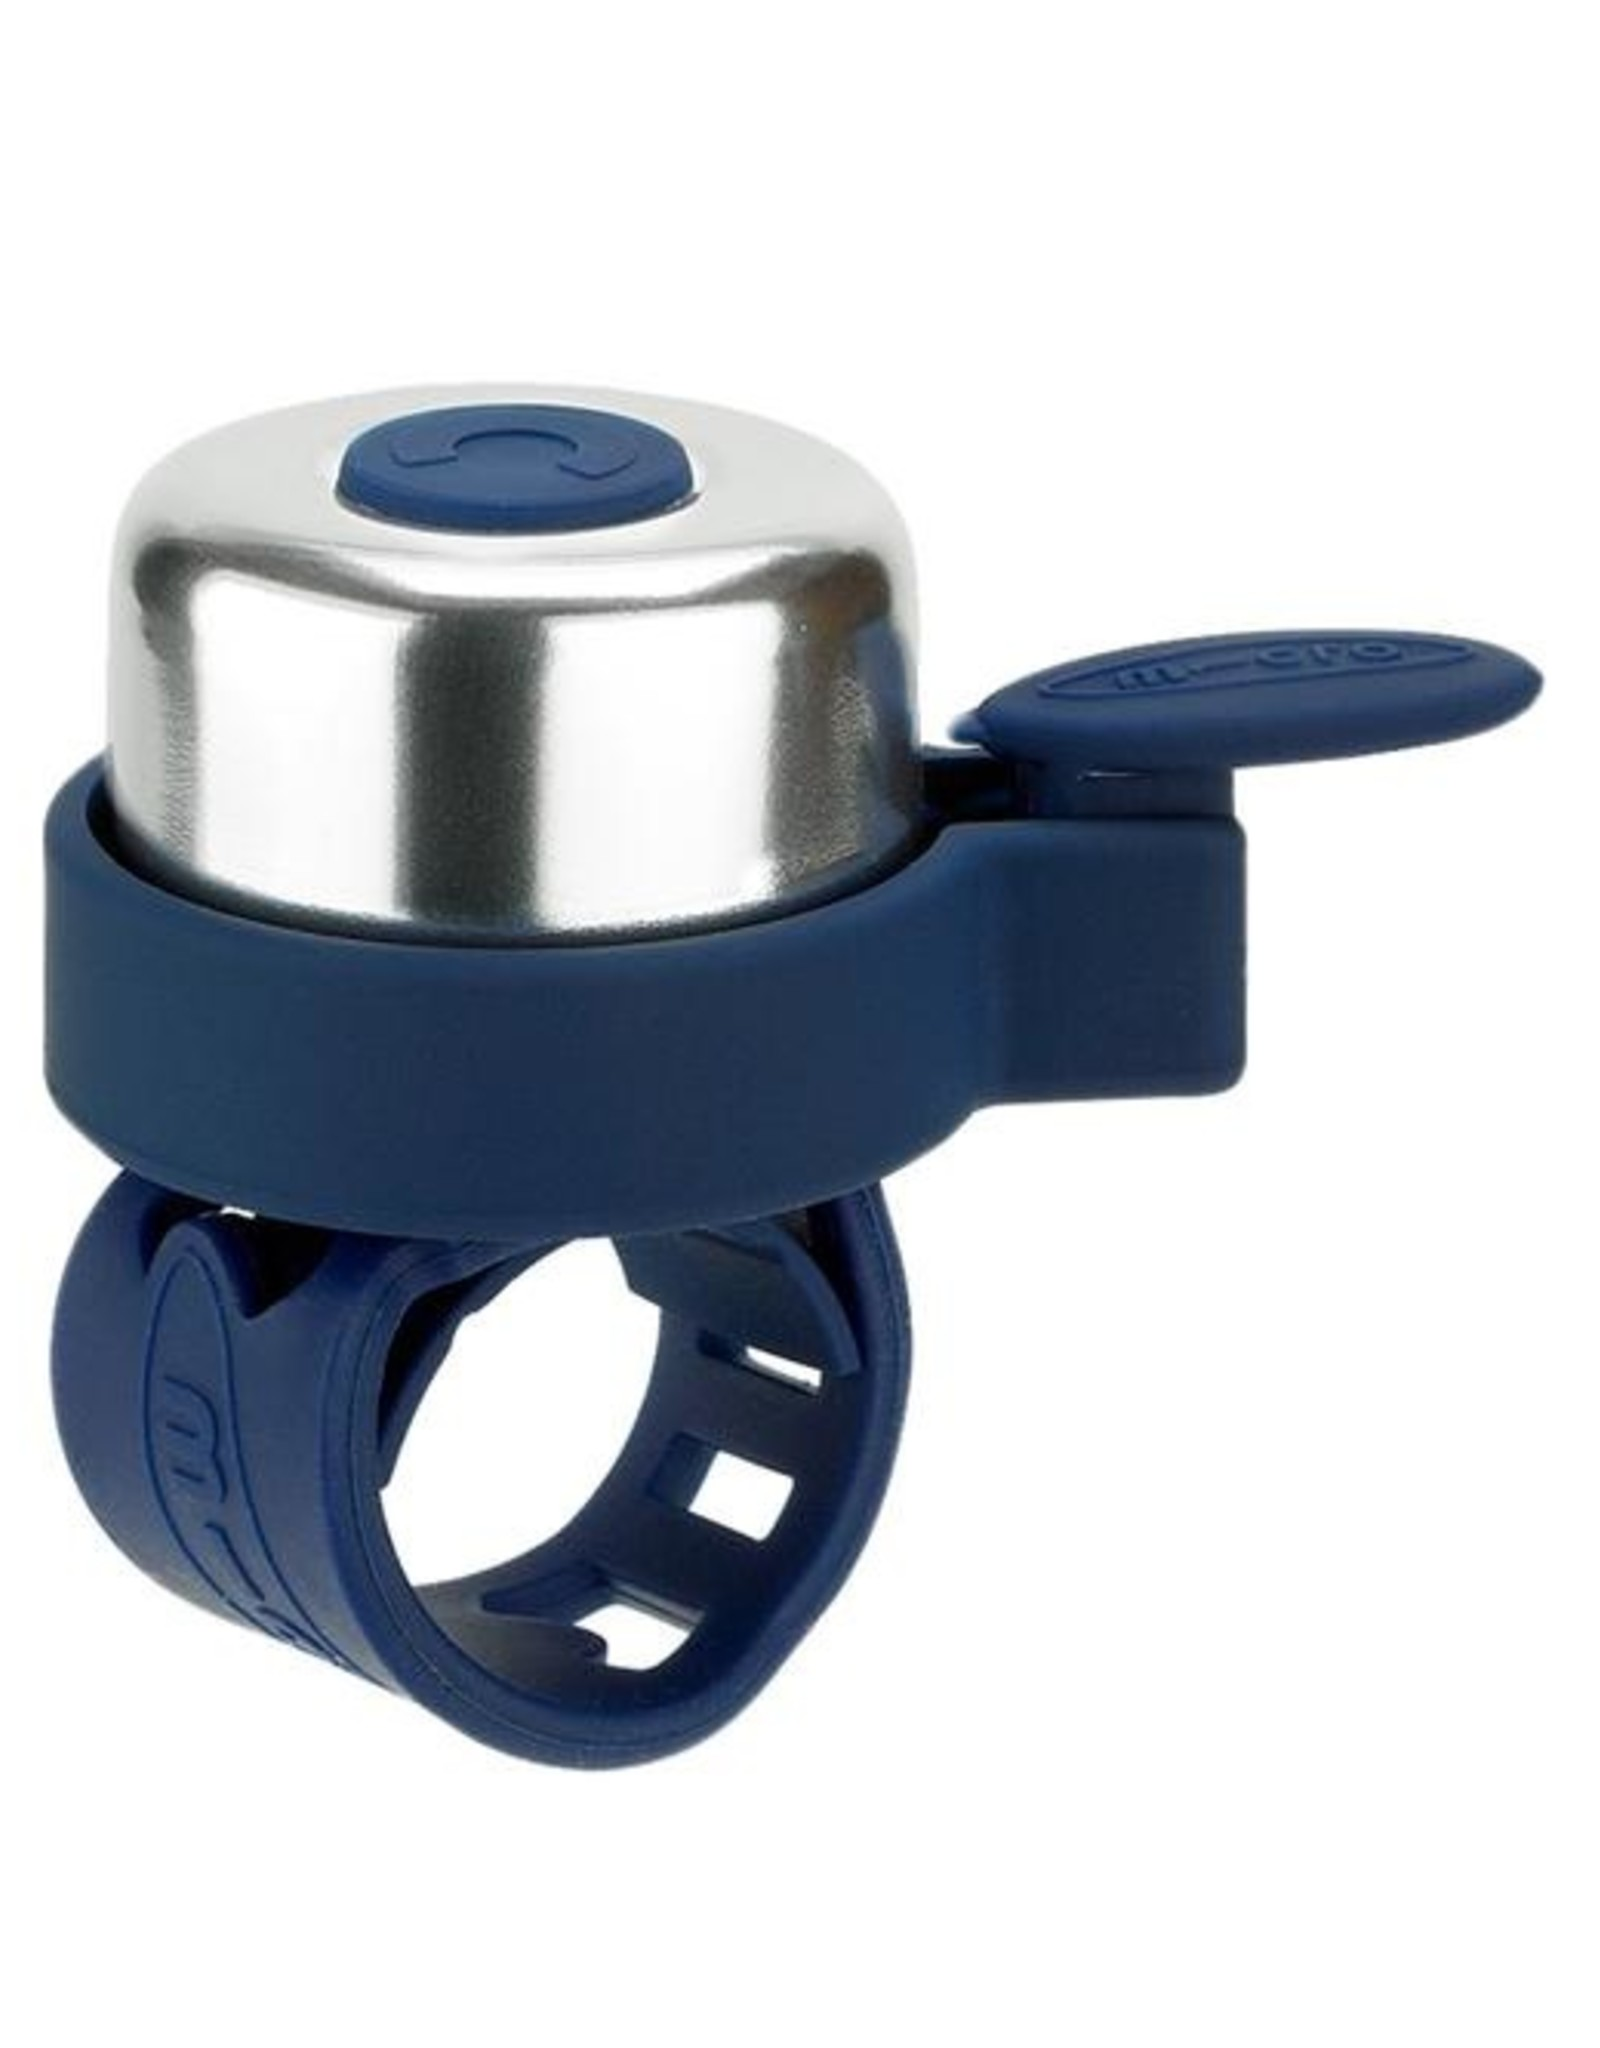 Micro Scooter Micro - Scooter Bell Dark Blue